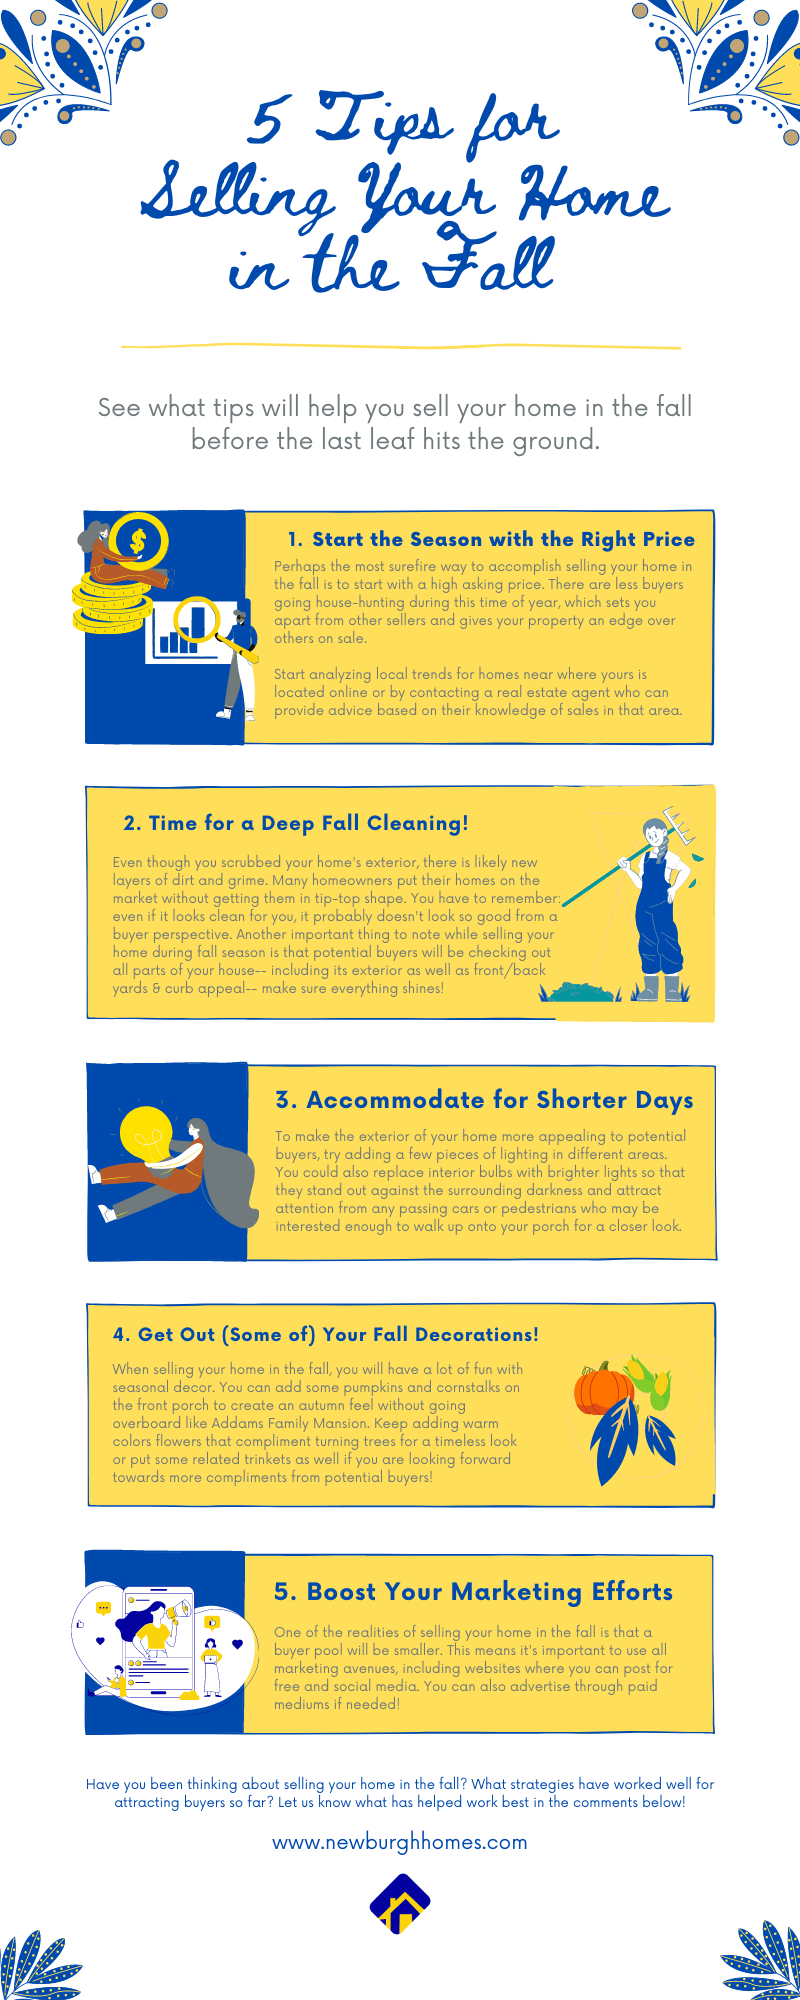 5 Tips for Selling Your Home in the Fall infographic